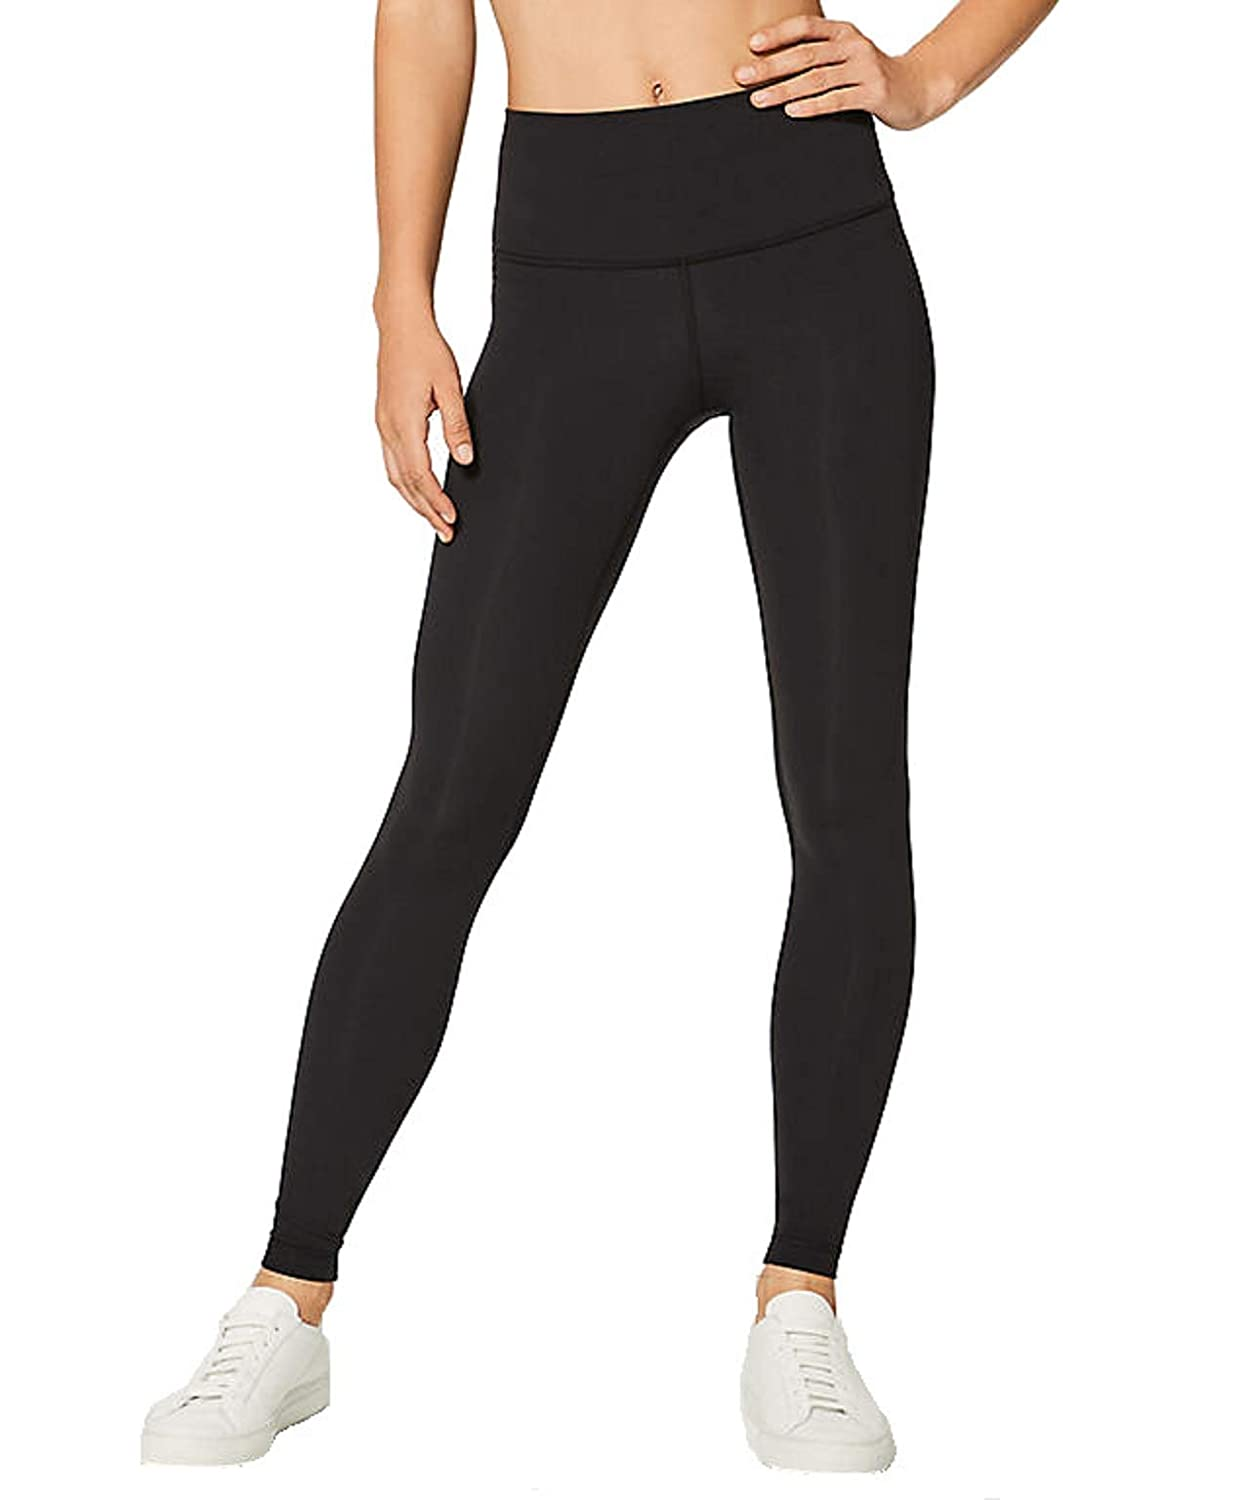 8342872f24 Amazon.com: Lululemon Wunder Under Yoga Pants High-Rise: Sports & Outdoors